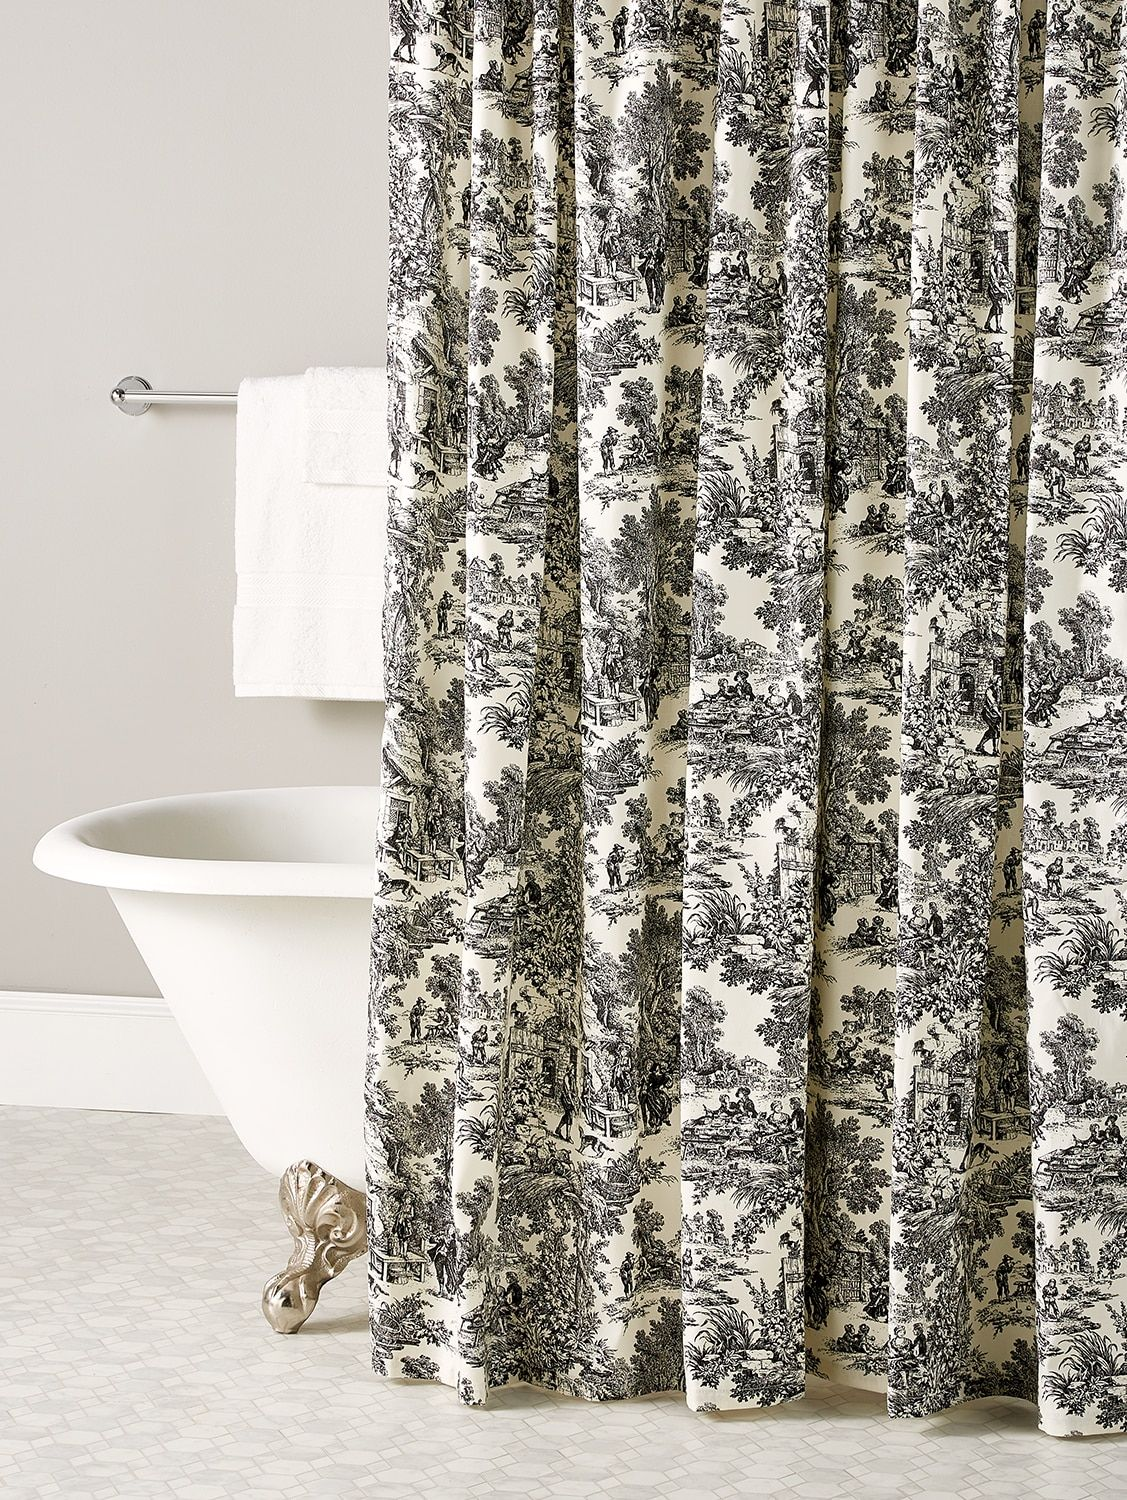 Essex Toile Shower Curtain French Country Bathroom Country Shower Curtain Farmhouse Shower Curtain